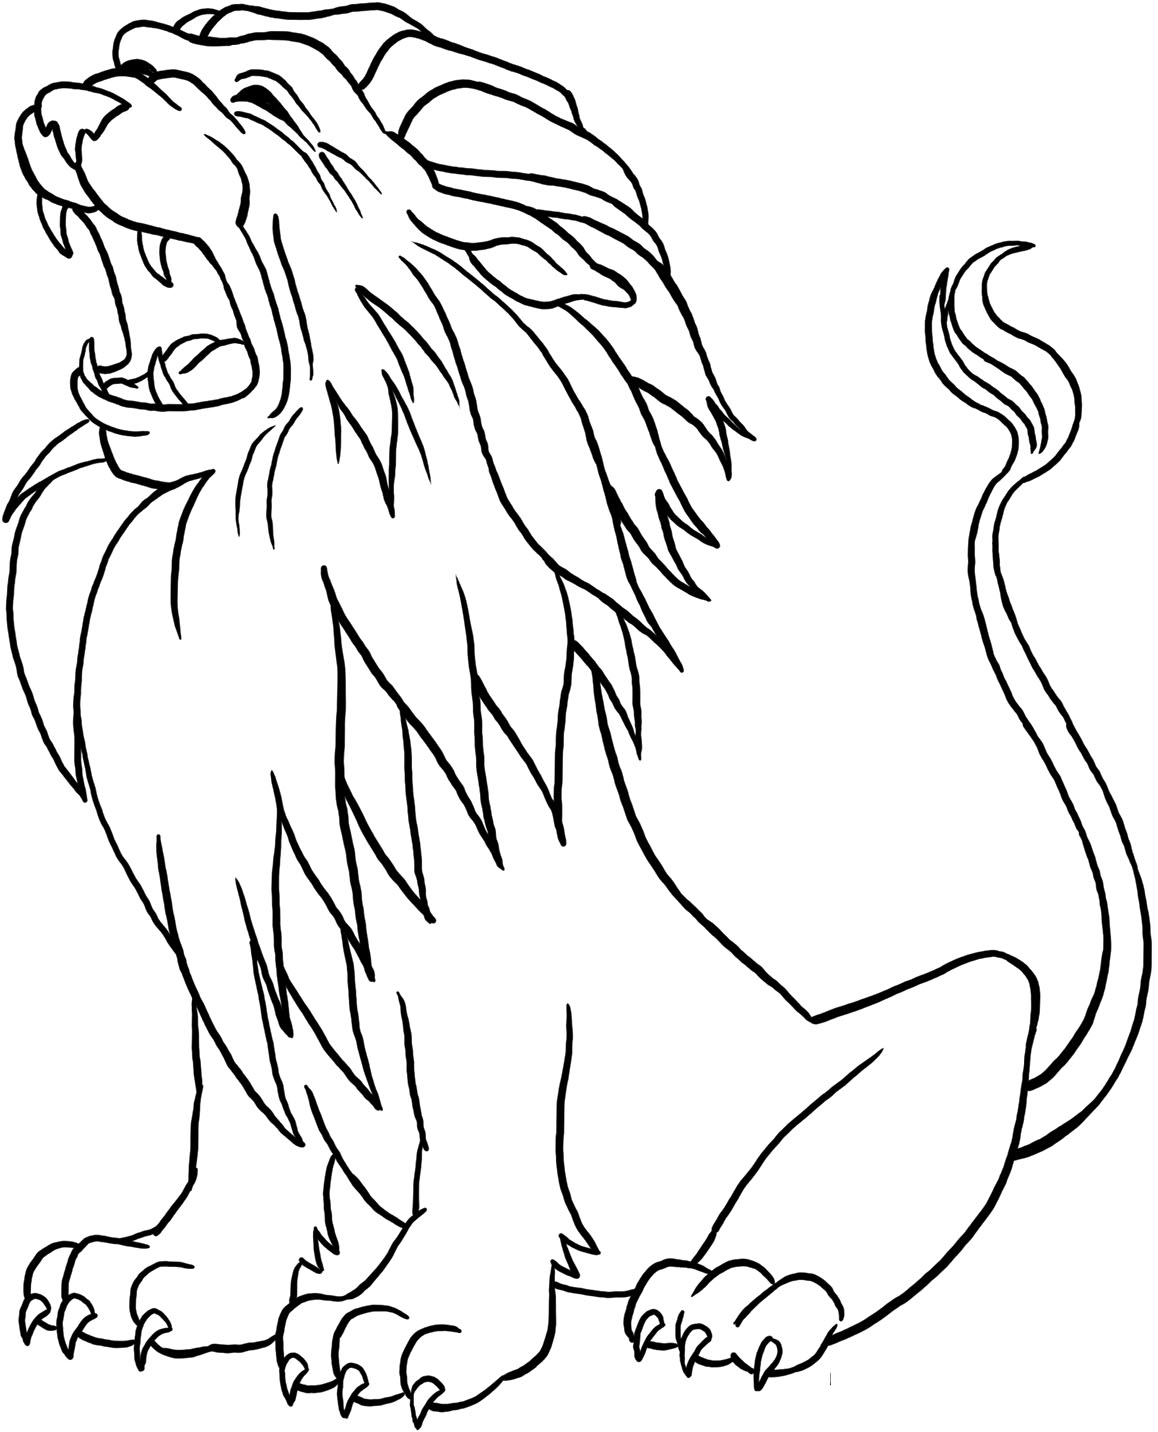 coloring pages of lion lion coloring pages only coloring pages of lion coloring pages